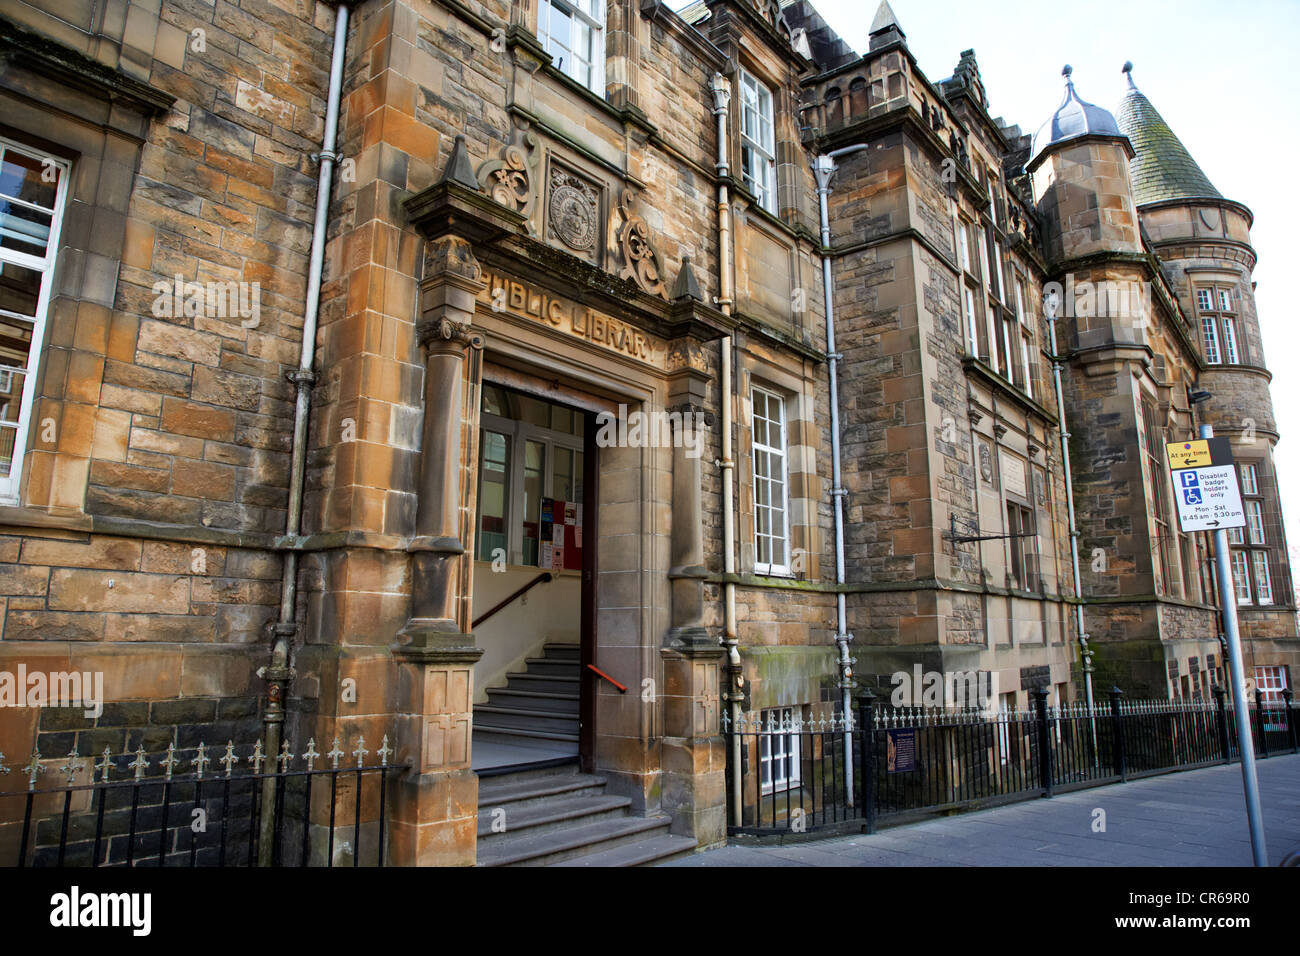 stirling central public library building scotland uk - Stock Image